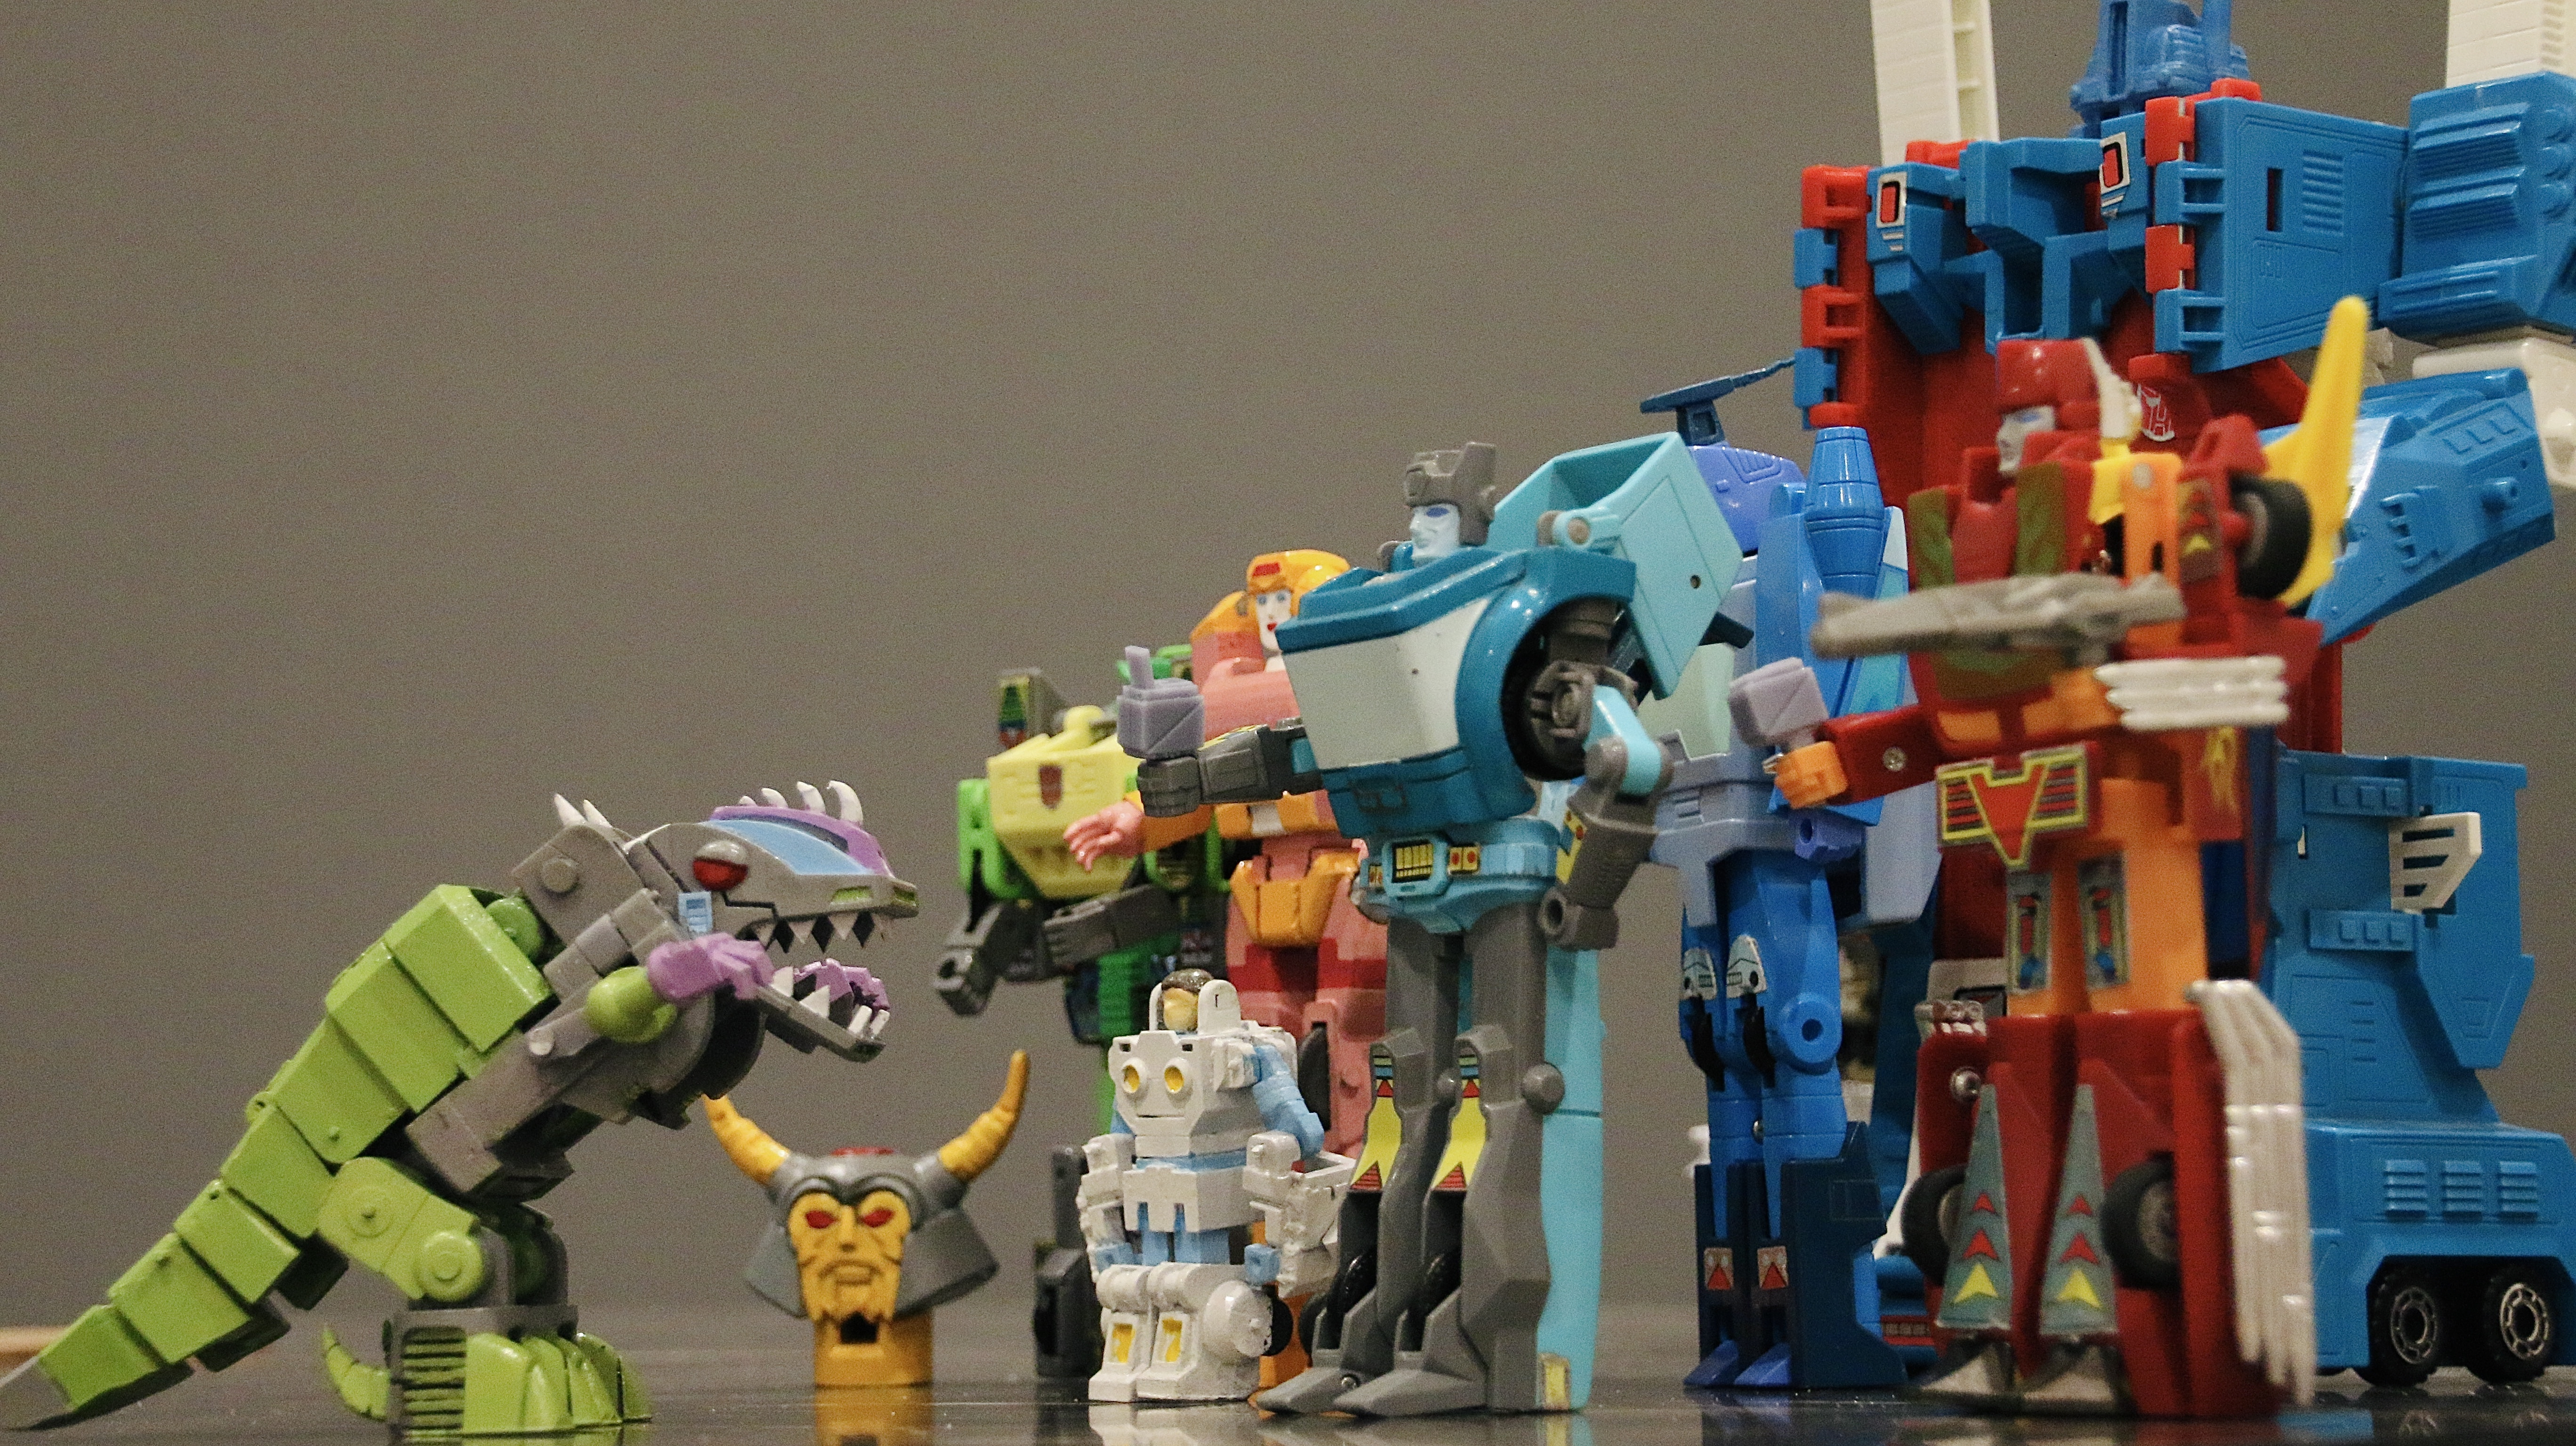 IMG_9860.jpg Download STL file Transformers G1 Allicon (11cm Scale) • 3D print object, mmshightail